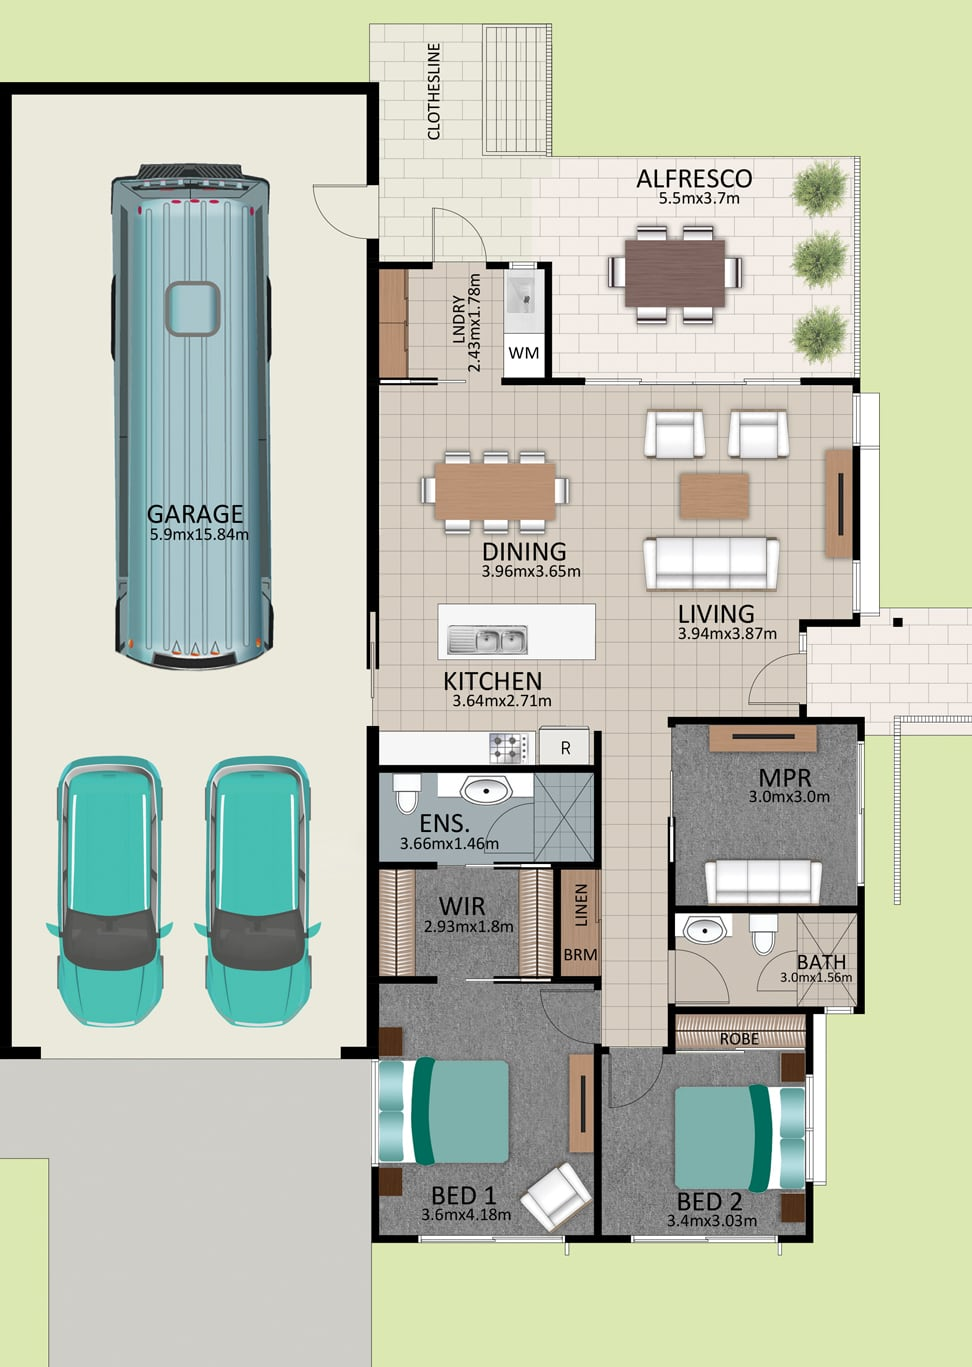 latitude 25 rv lifestyle community